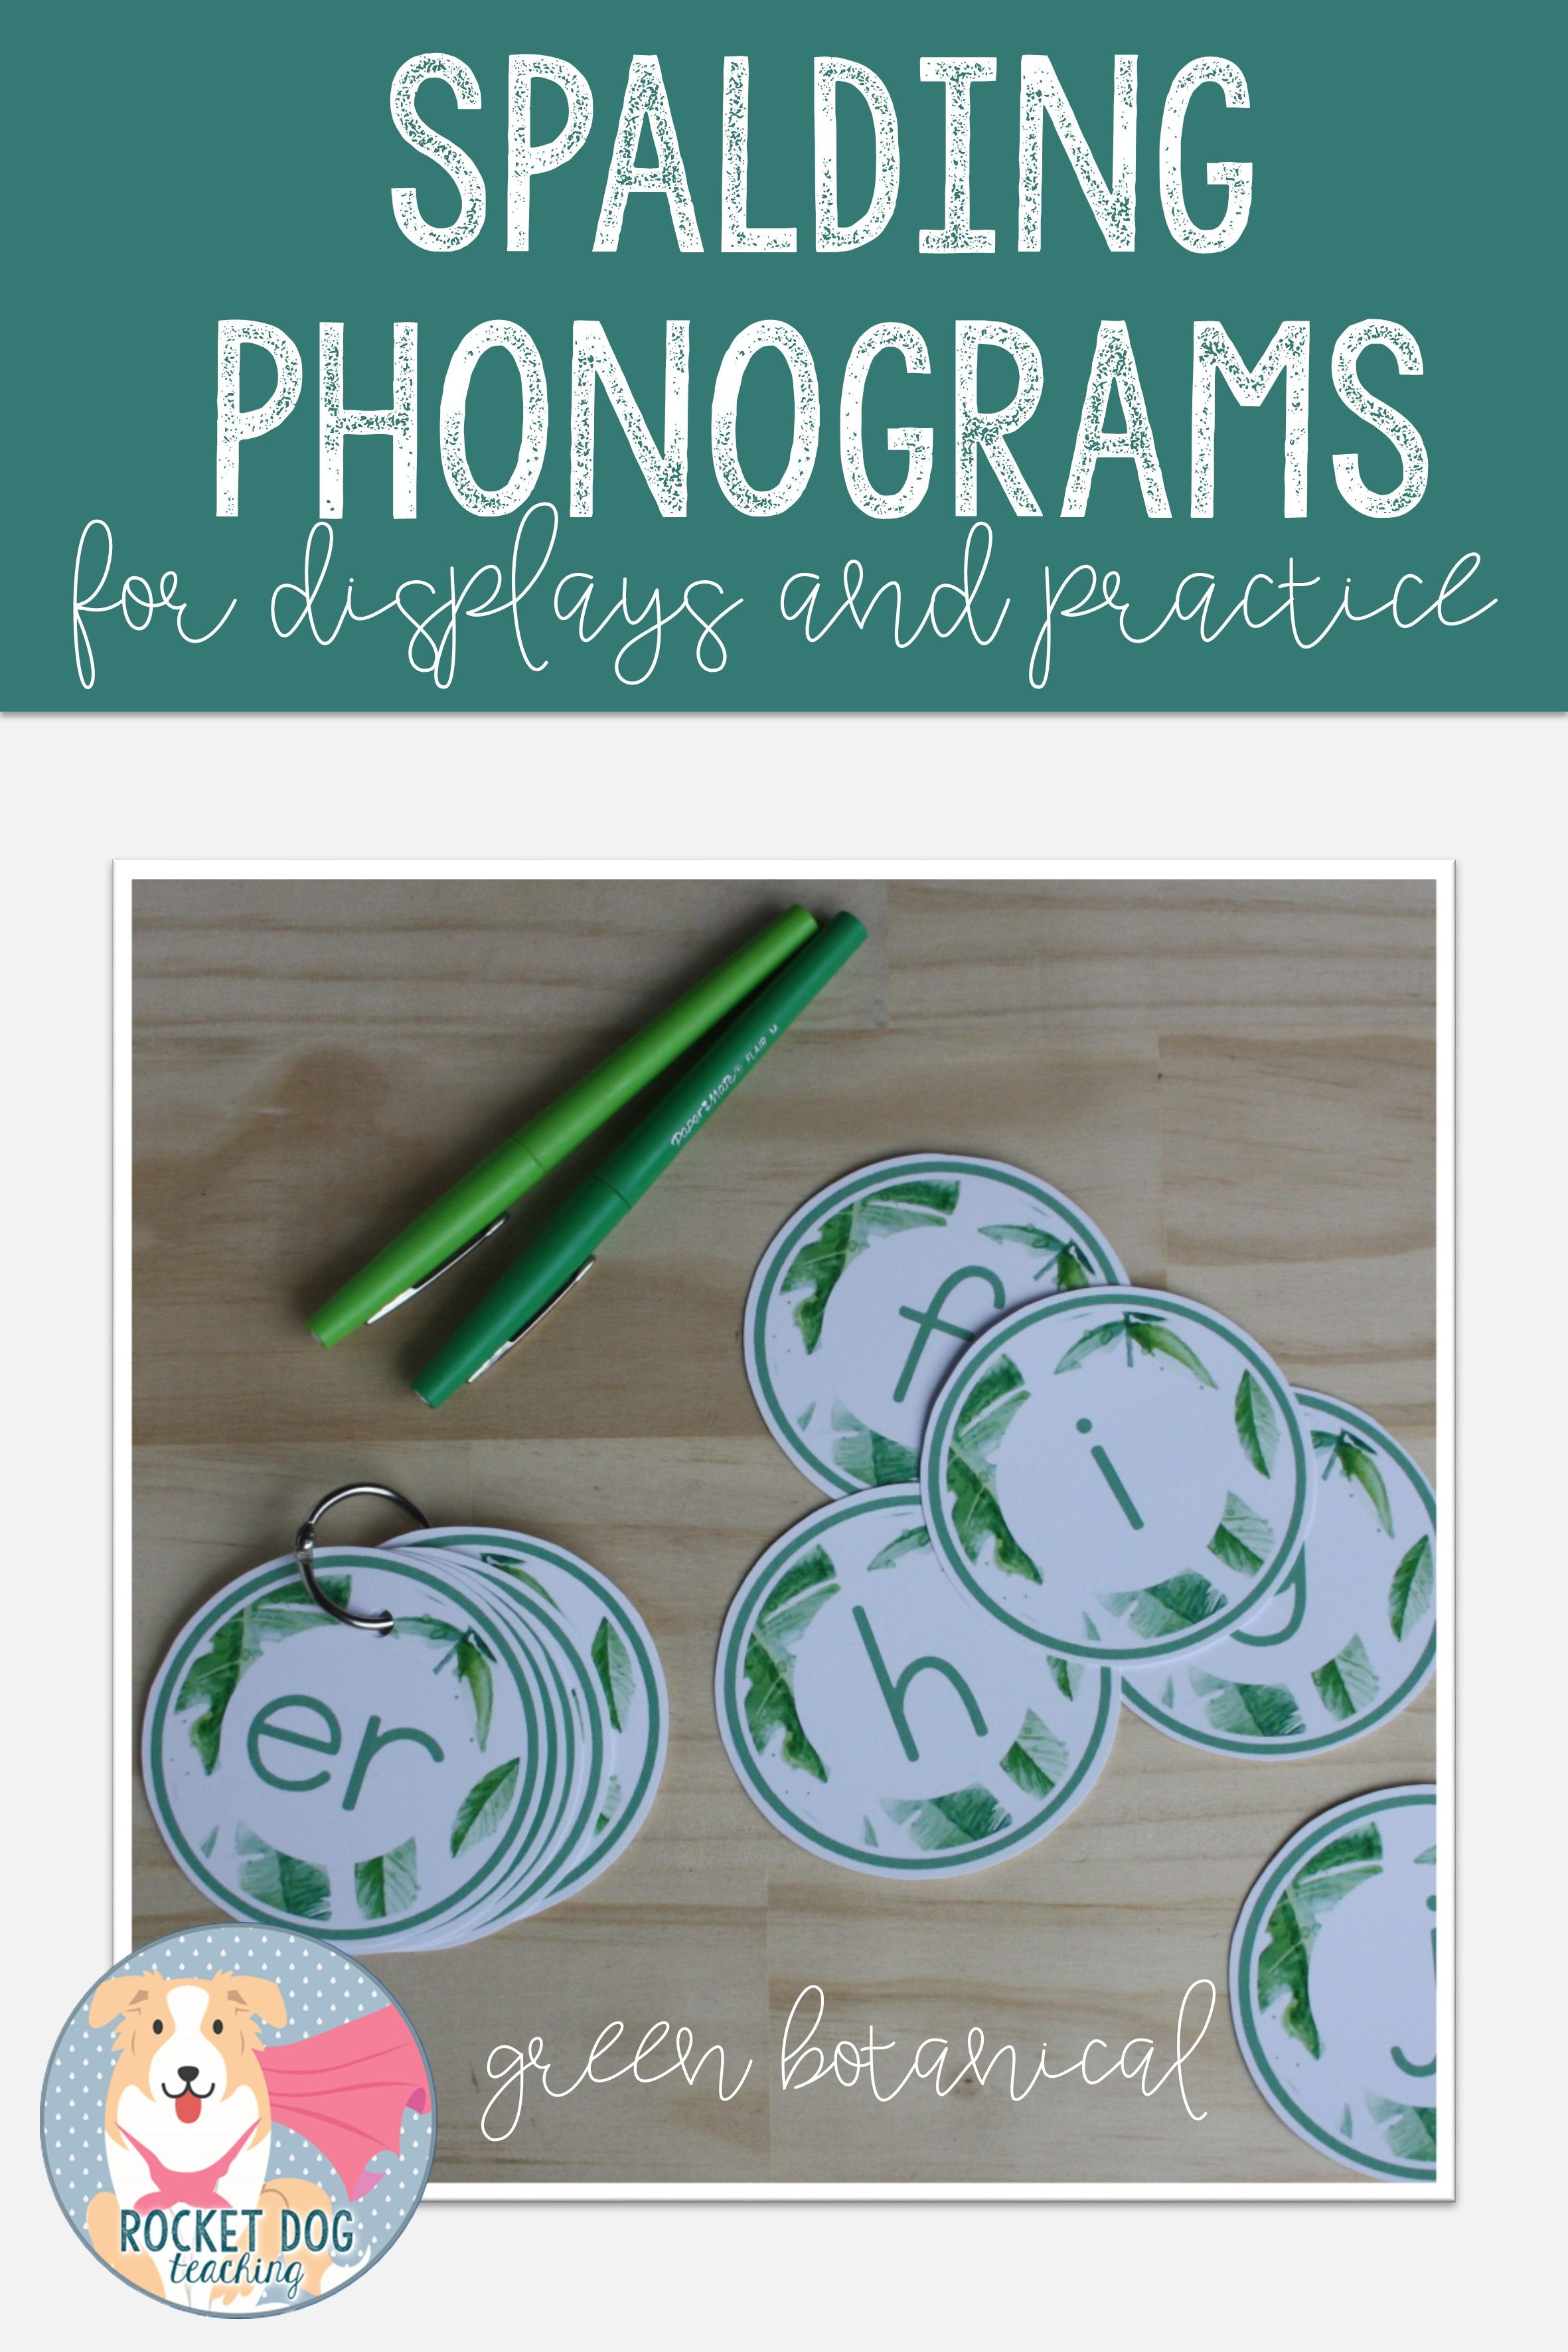 Spalding Phonogram Cards In A Green Botanical Design For Your Classroom Display Them For Student Reference Classroom Displays Phonograms Classroom Education [ 3543 x 2362 Pixel ]